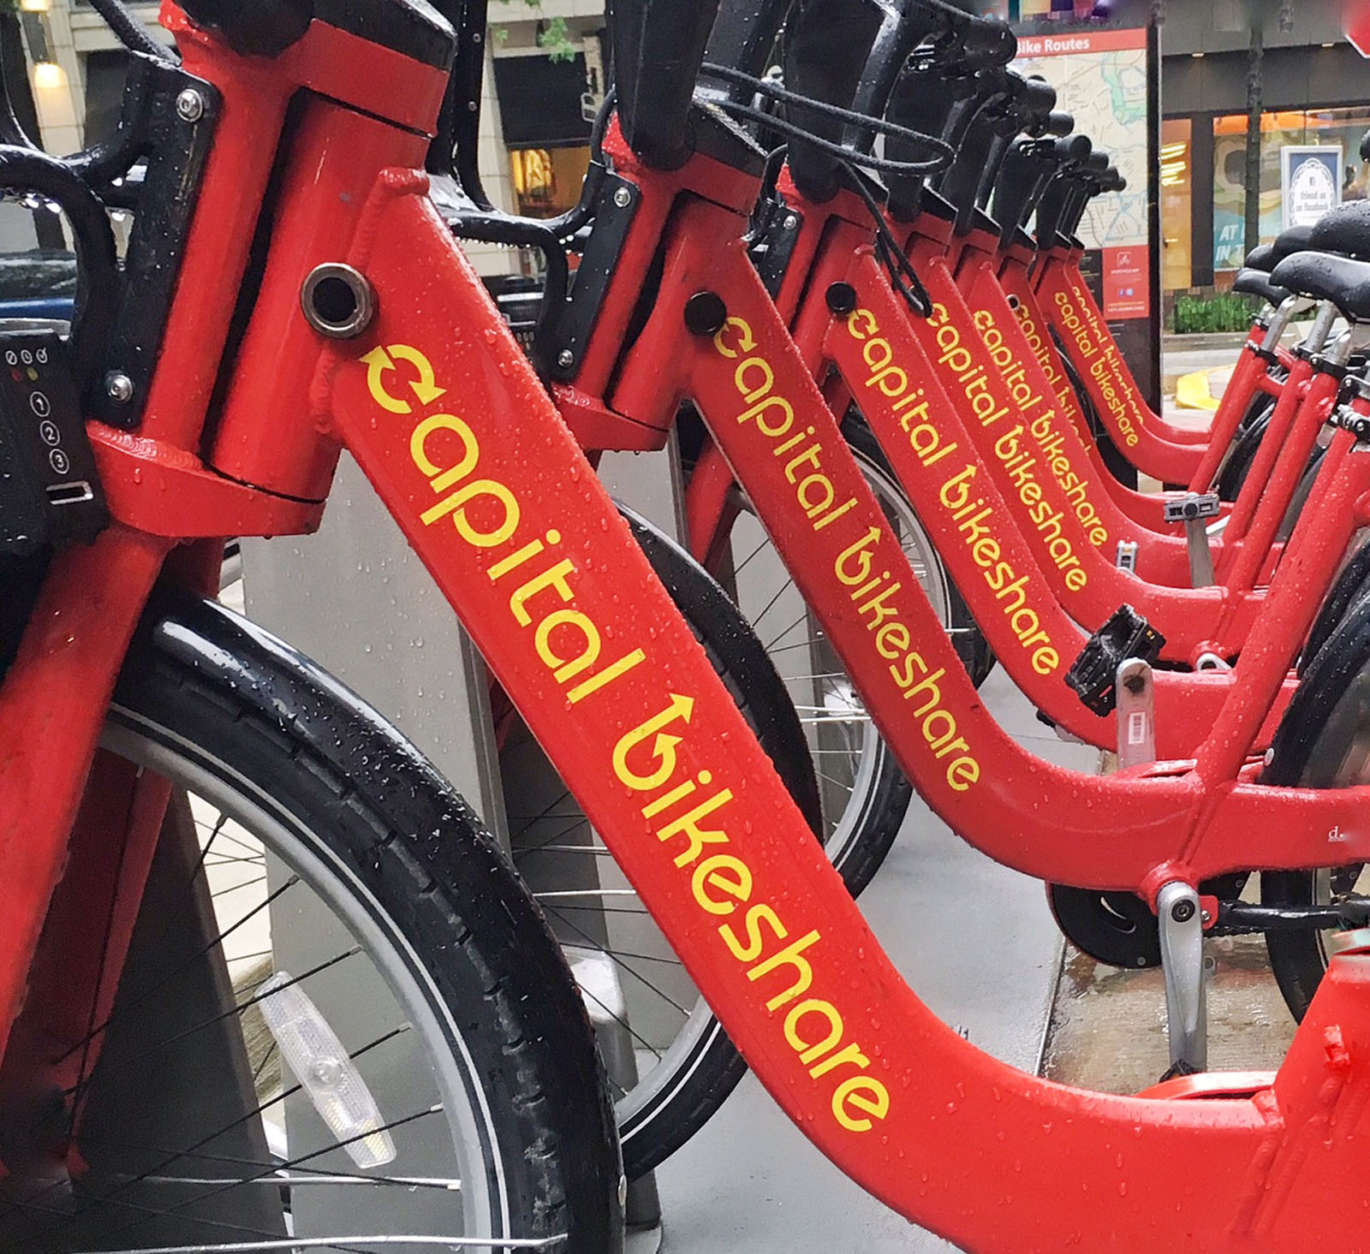 Capital Bikeshare is the D.C. area's bike-sharing system but a DDOT official says there's room for competition. (WTOP/Kate Ryan)